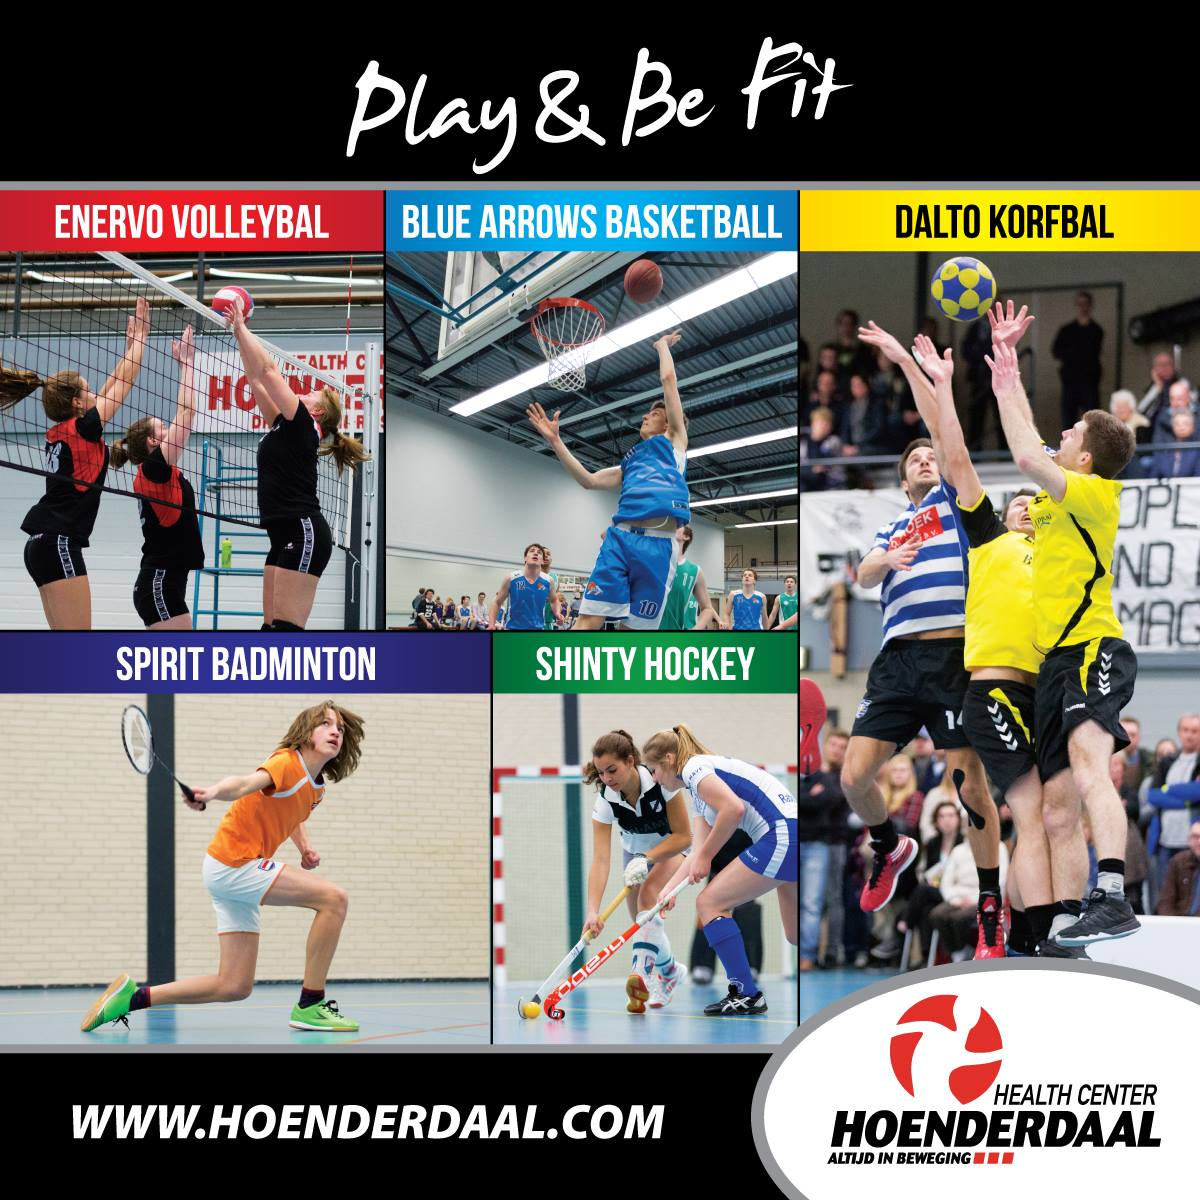 Compilation of basketball, volleybal, korfbal, badminton anf hockey on one poster made for an health centre